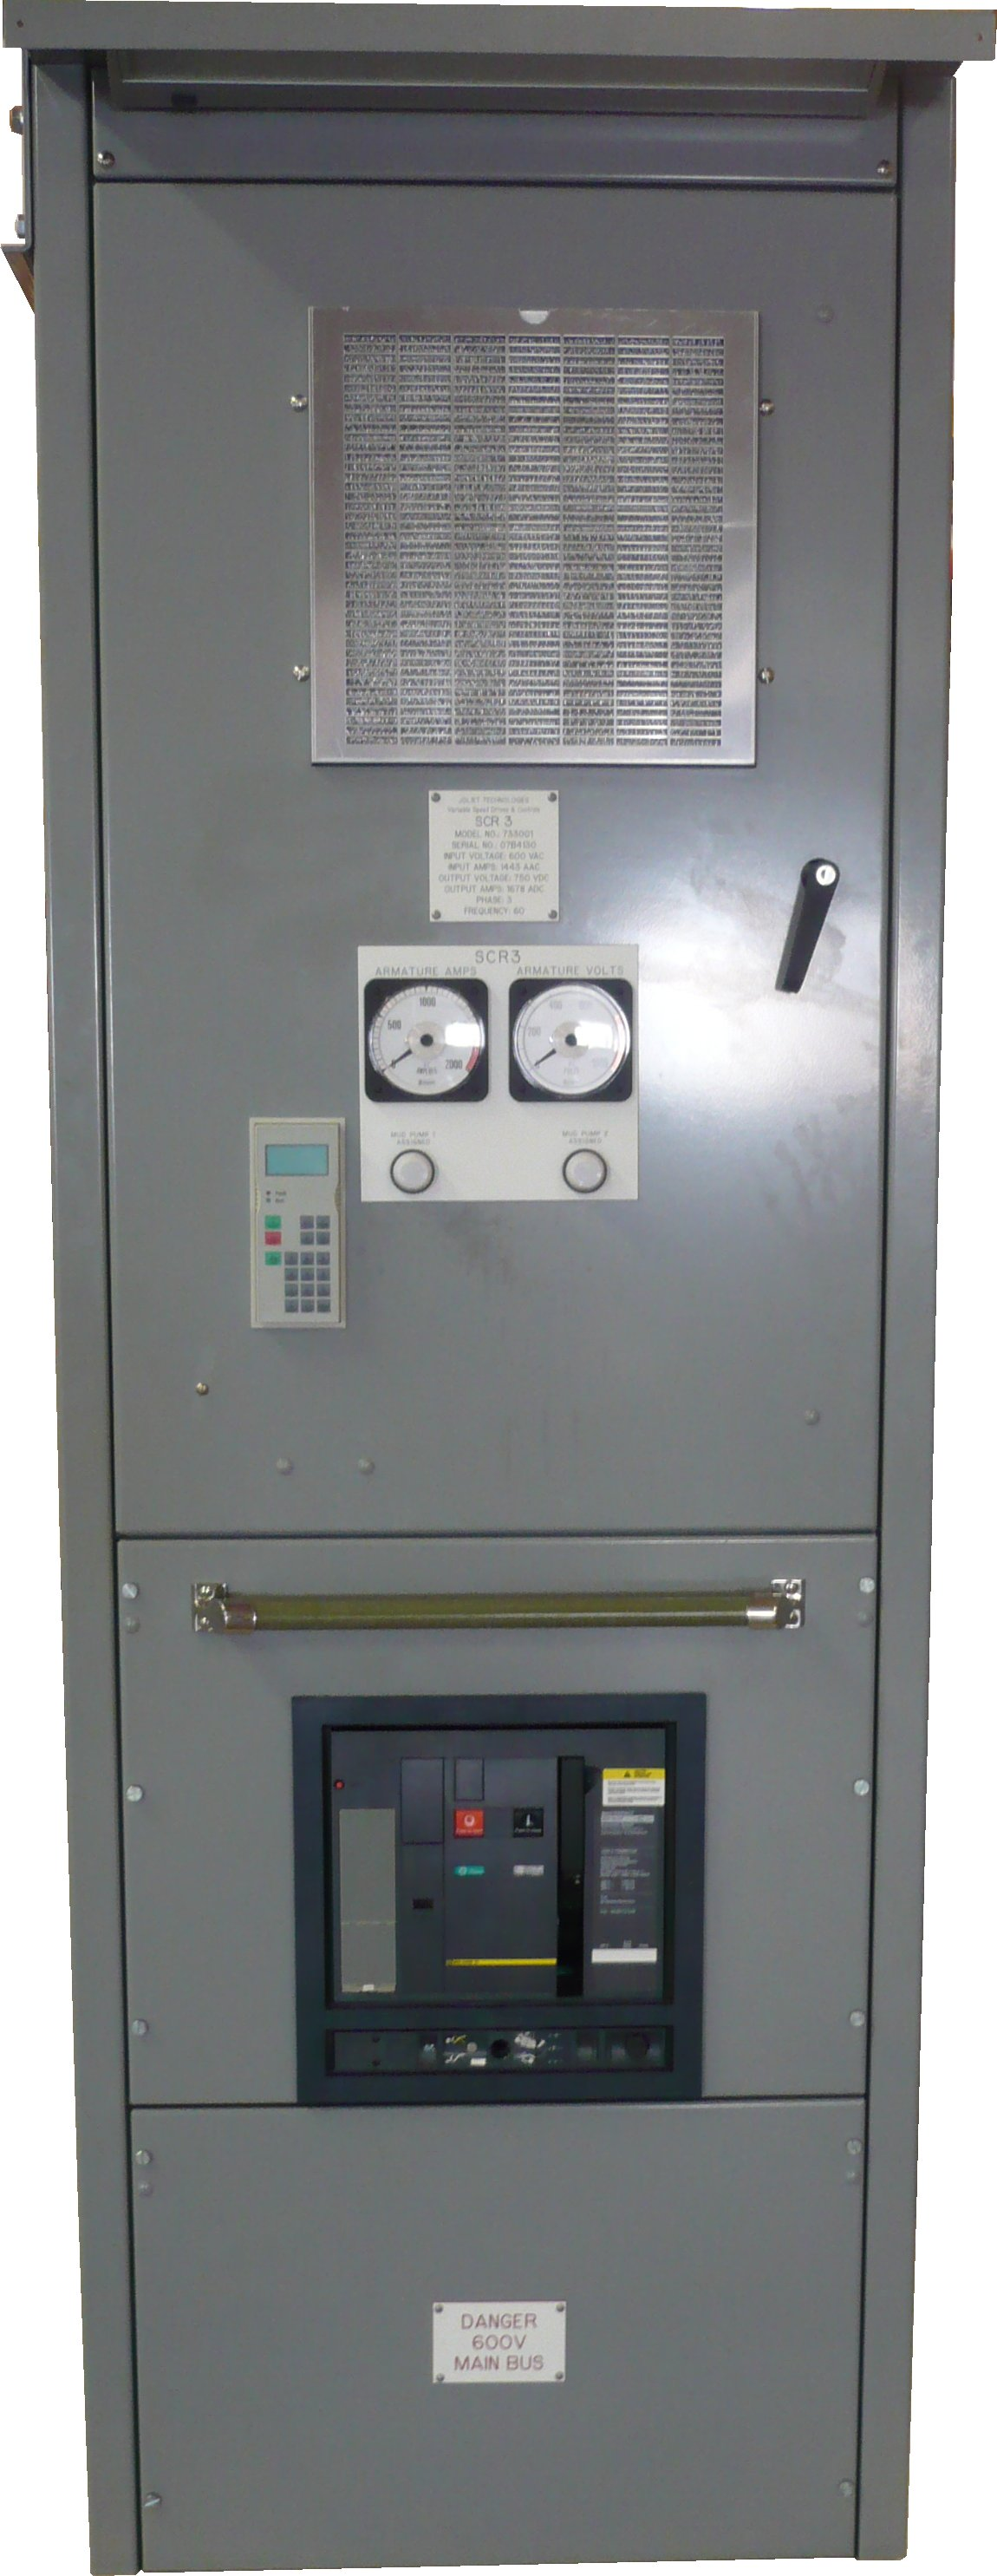 Ac Vfd Ac Controllers And Dc Vsd By Joliet Technologies also Ac Vfd Ac Controllers And Dc Vsd By Joliet Technologies further Danfoss Cp715 Wiring Diagram furthermore Variable Frequency drive as well 3 Phase Inverter Schematic. on vfd scr